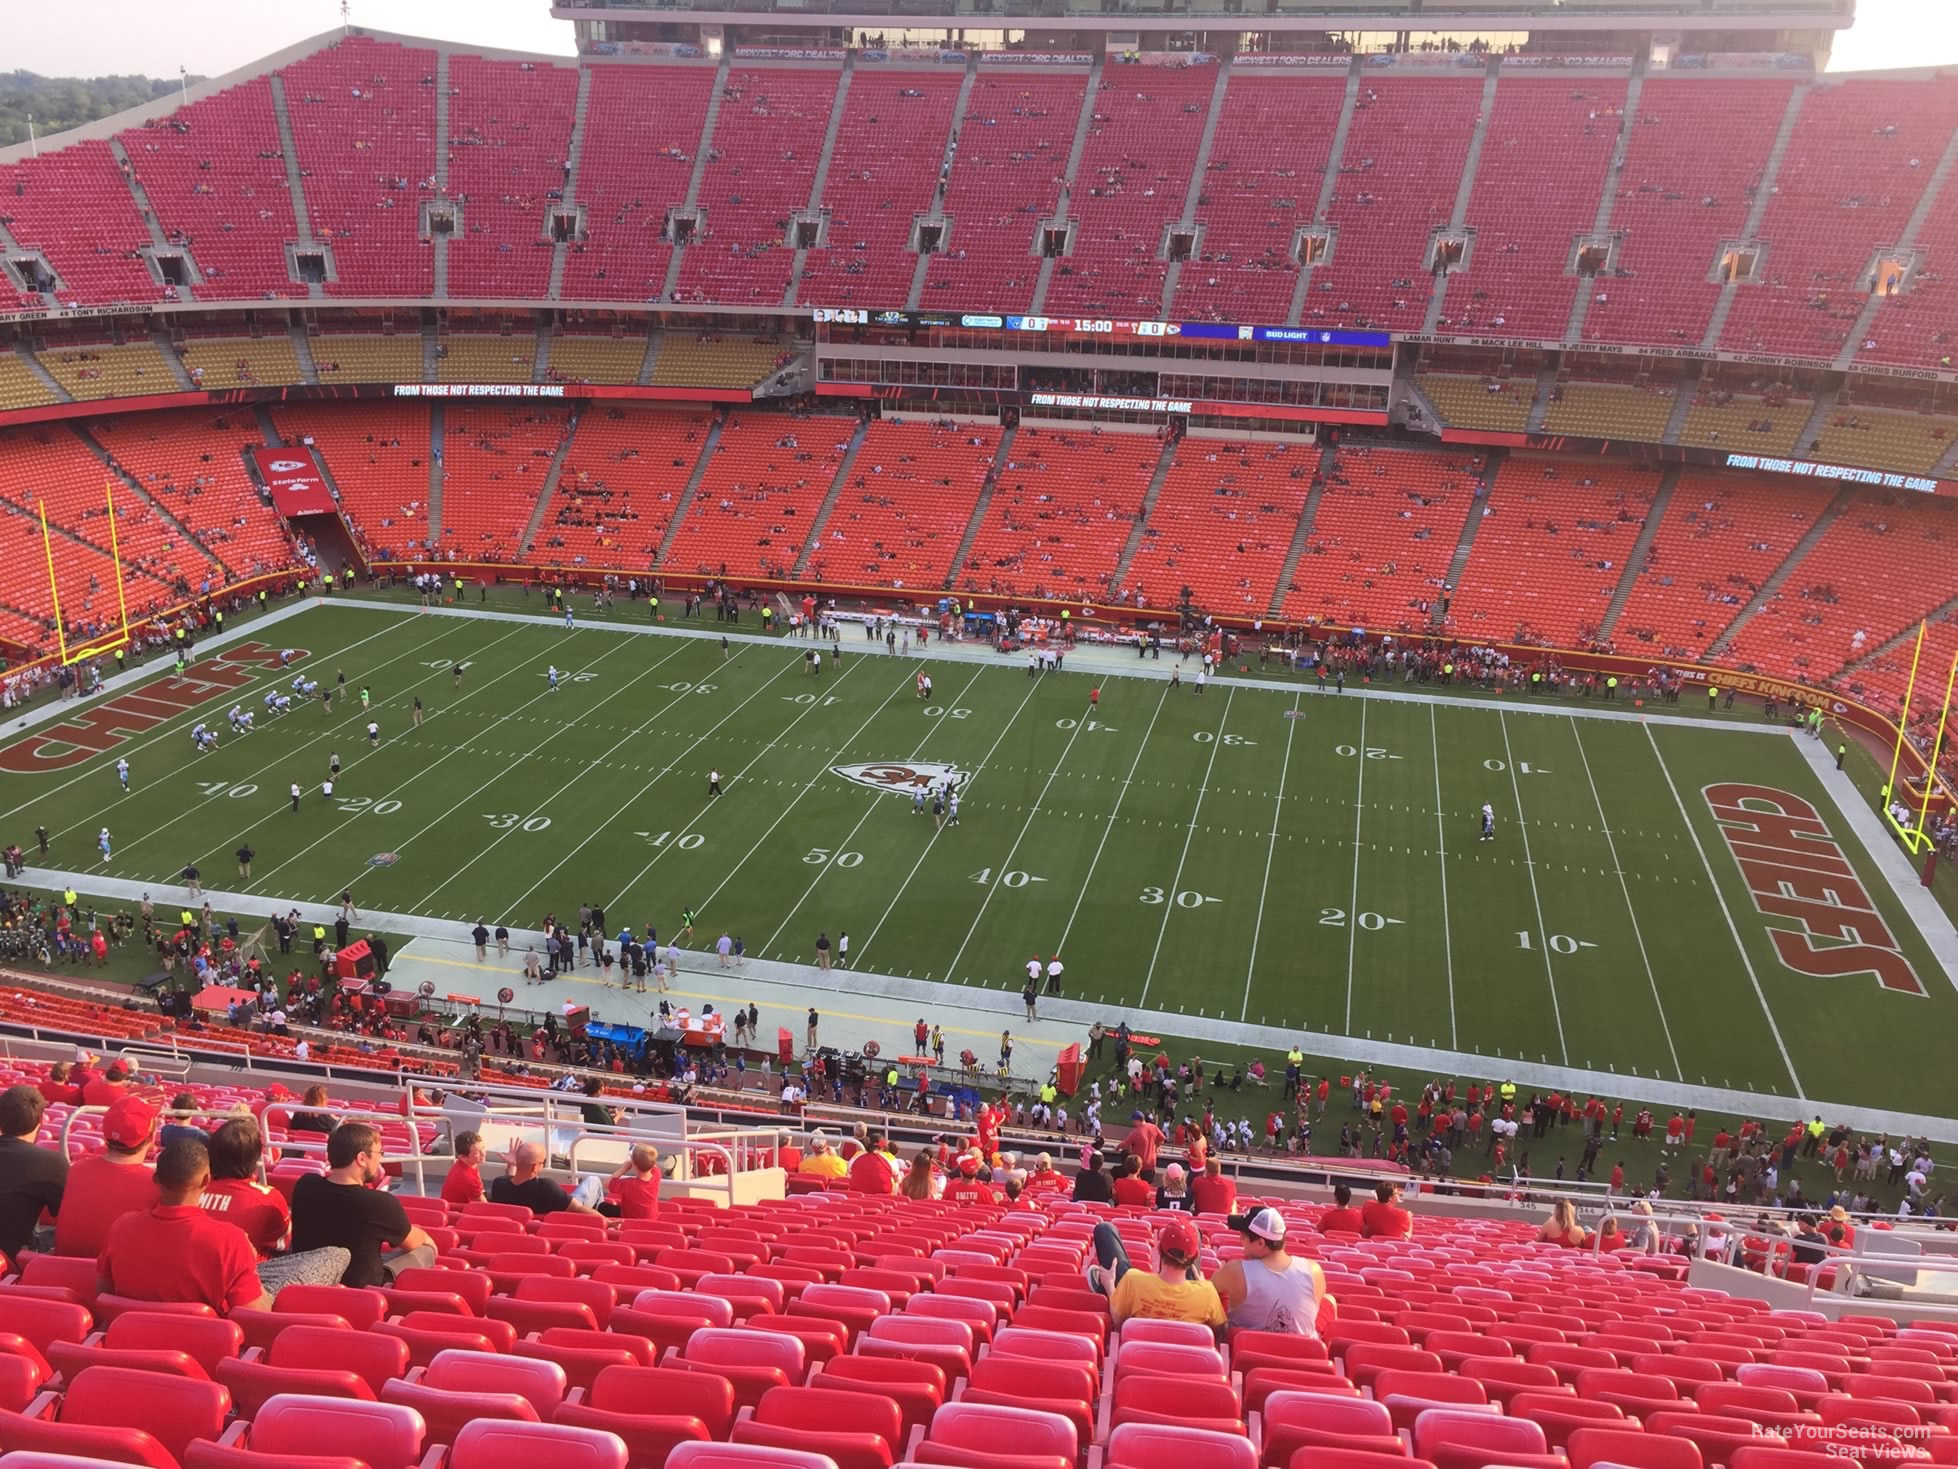 Section 345 seat view